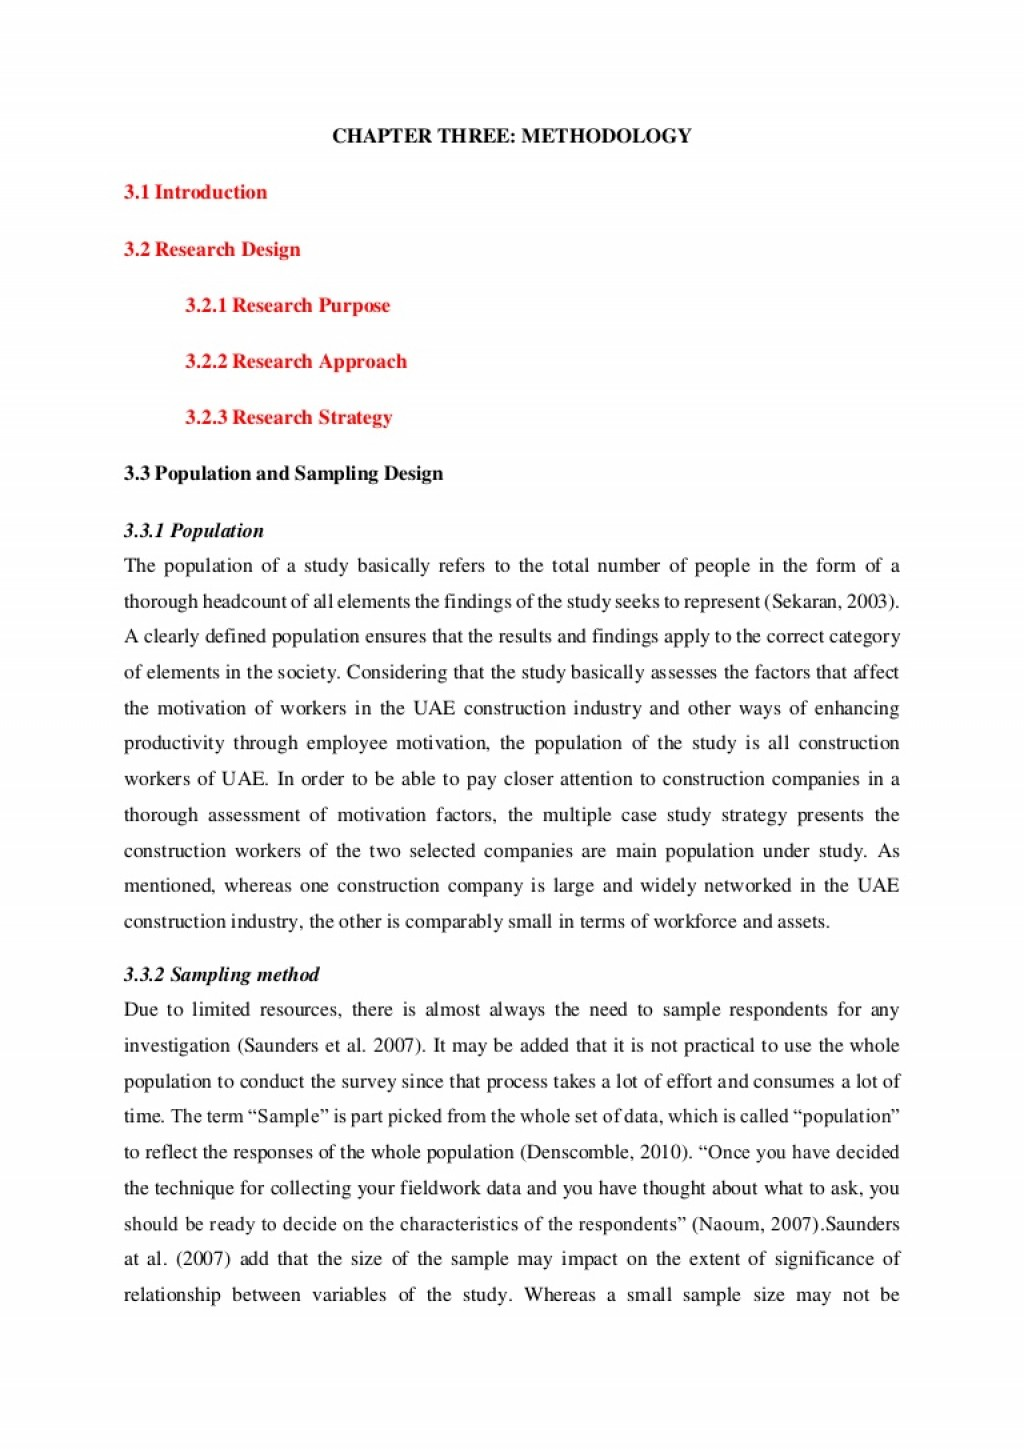 001 Conclusion Of Research Methodology Paper Samplestudy Conversion Gate02 Thumbnail Beautiful Chapter Hypothesis In Large